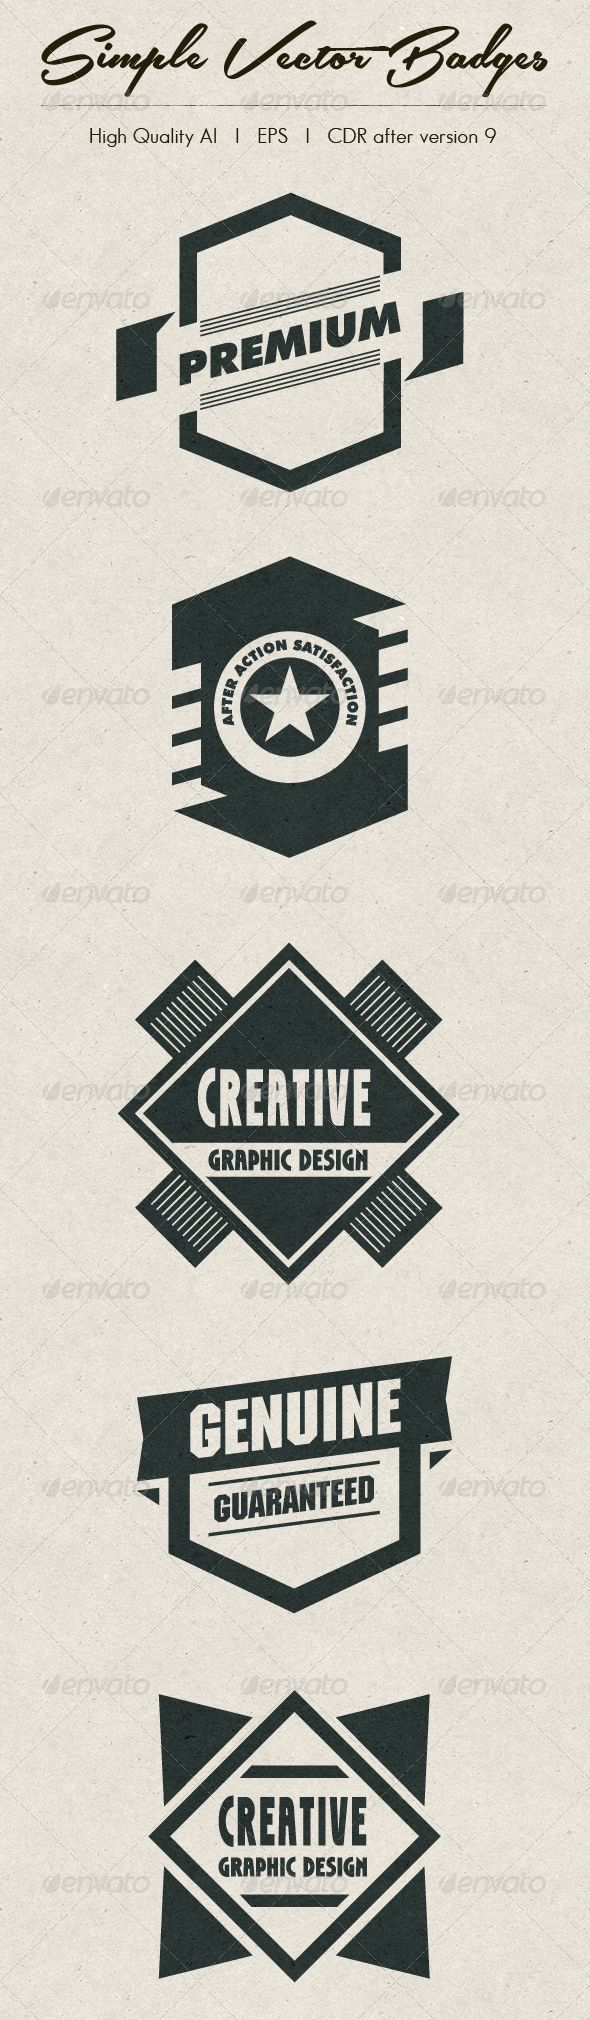 Simple Vector Badges